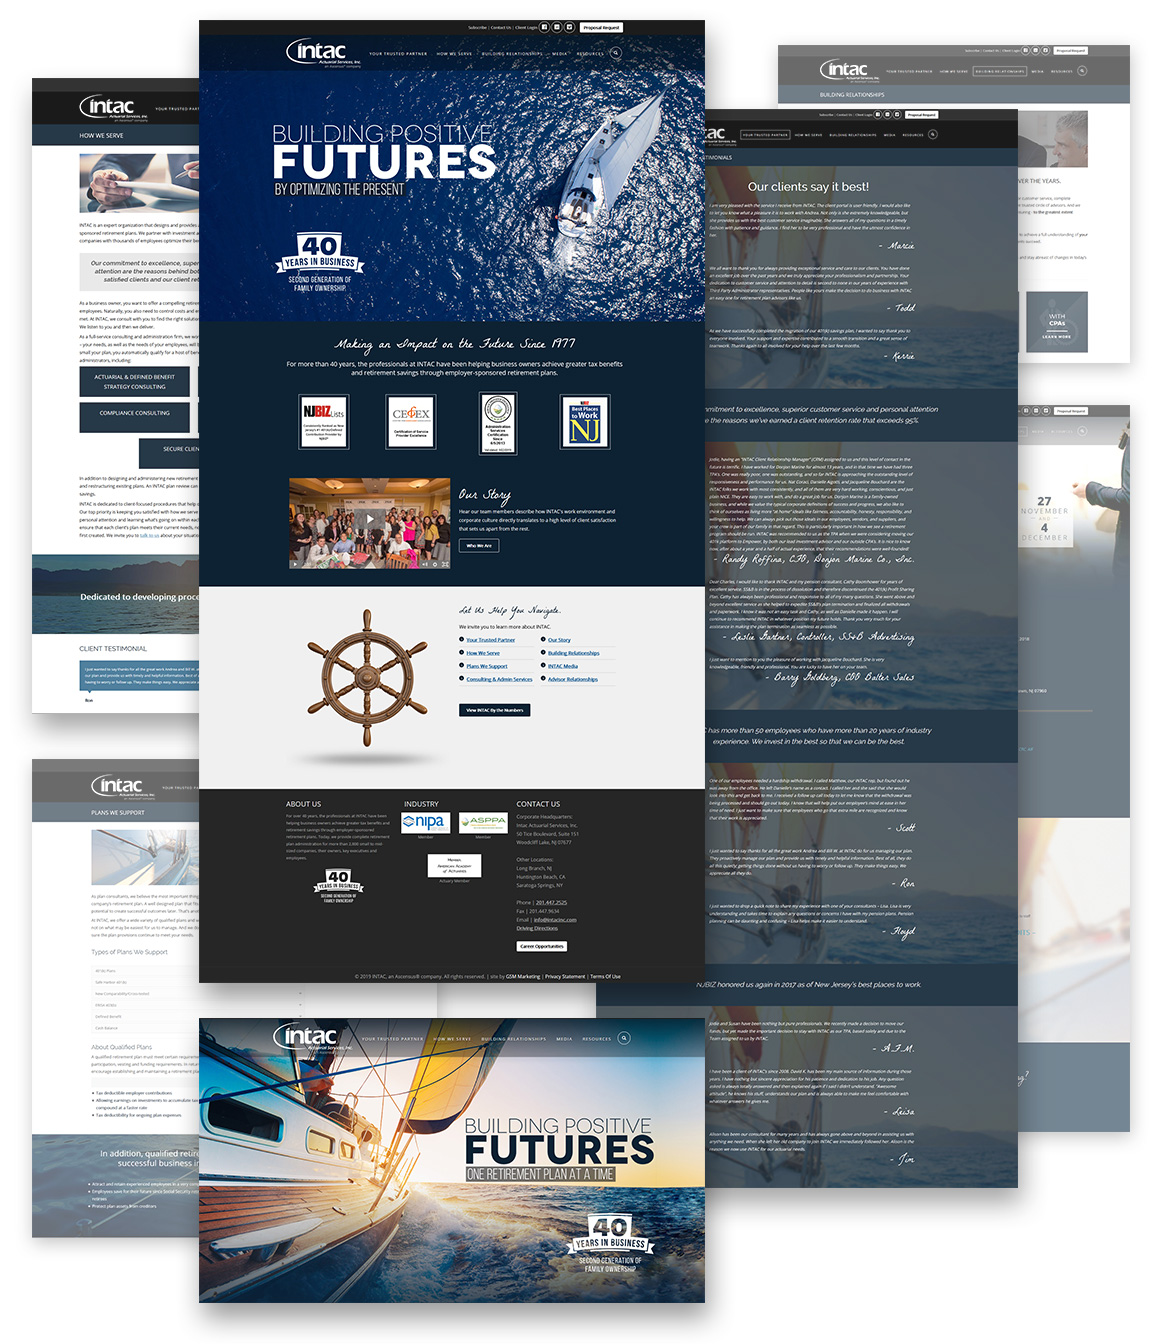 Flat composition showcasing full INTAC webpage designs